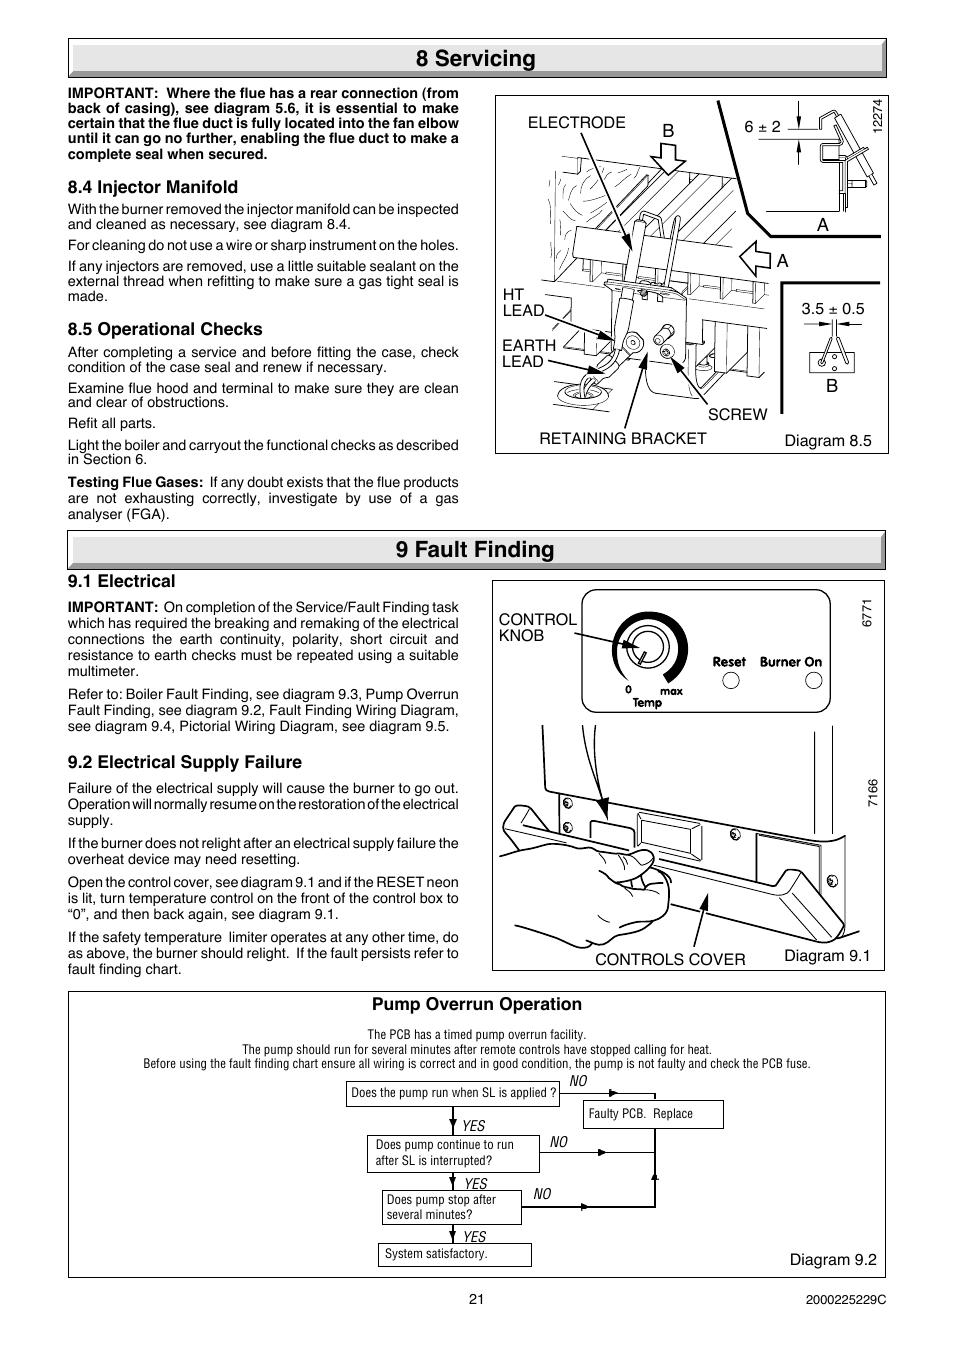 8 Servicing 9 Fault Finding Glow Worm Micron 70ff User Manual Pictorial Wiring Diagram Page 21 28